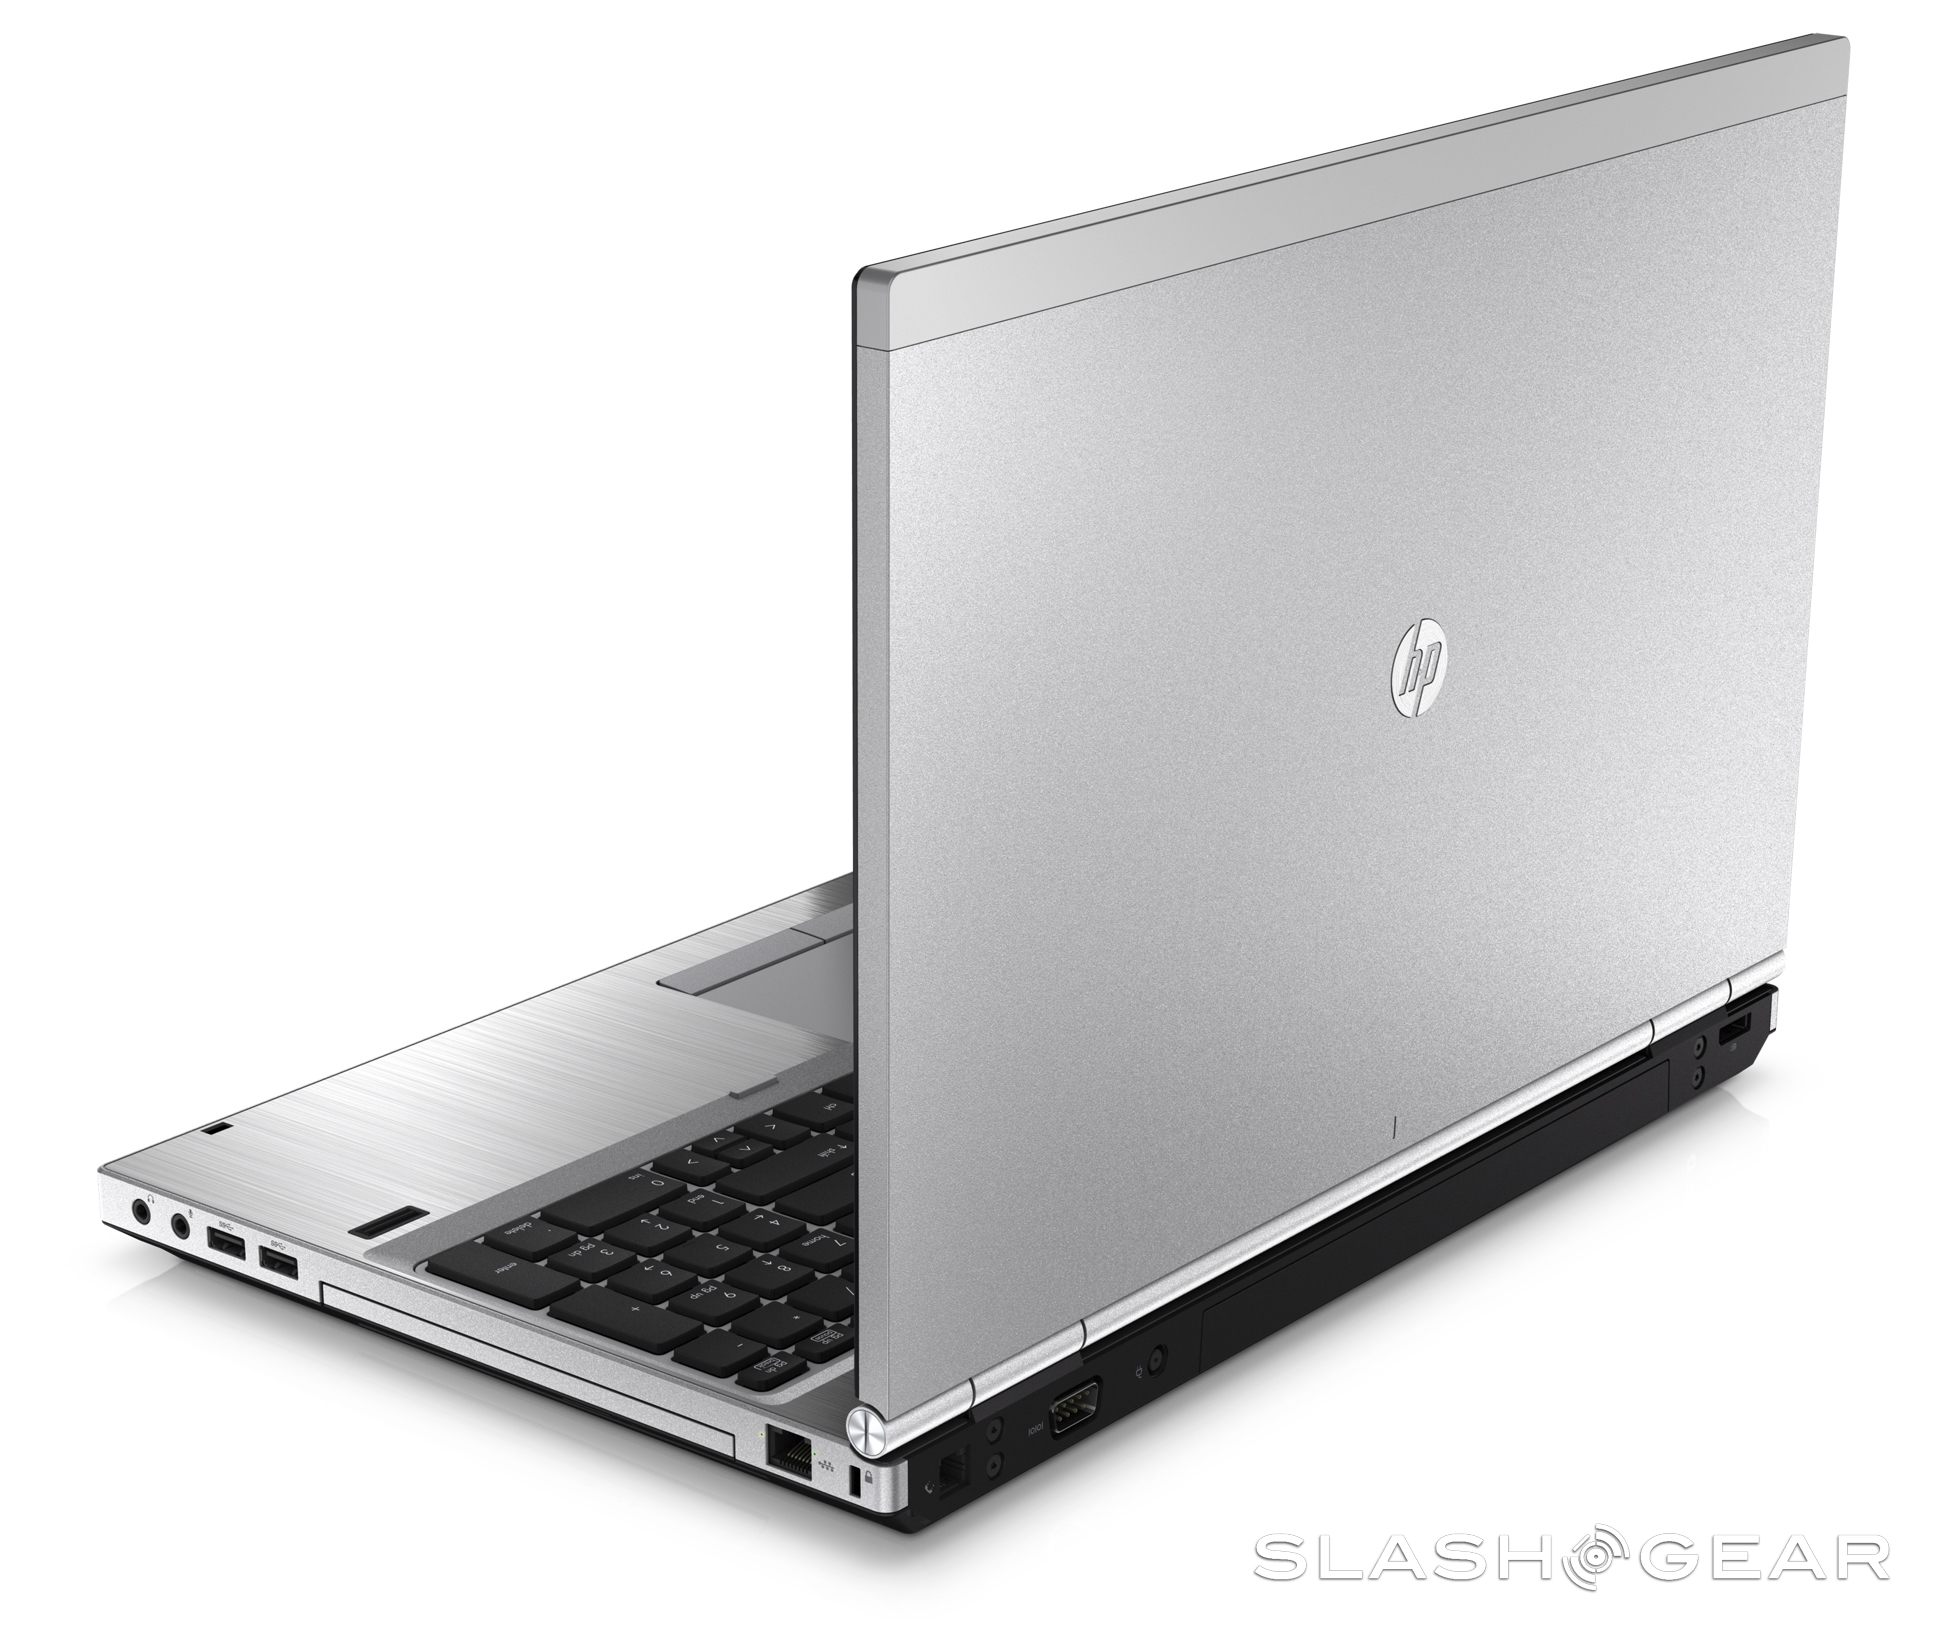 HP EliteBook 8470p, Intel core i5, 8GB, 320GB